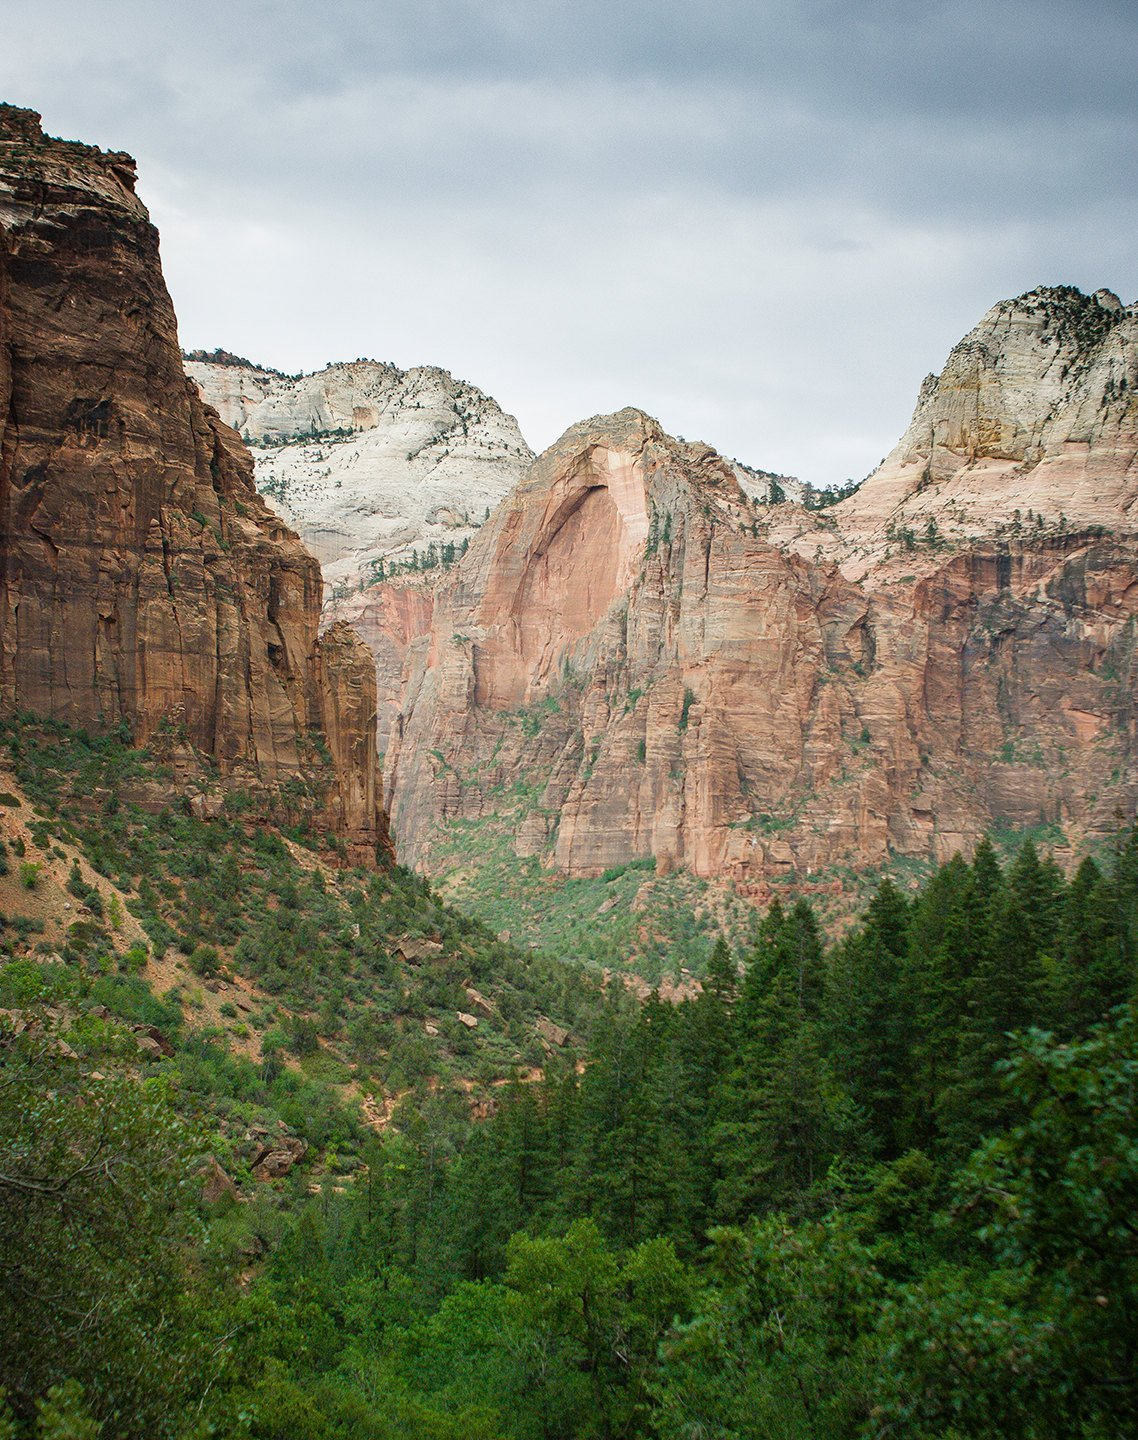 The Virgin River Valley, Zion National Park Utah Lost Kat Photography